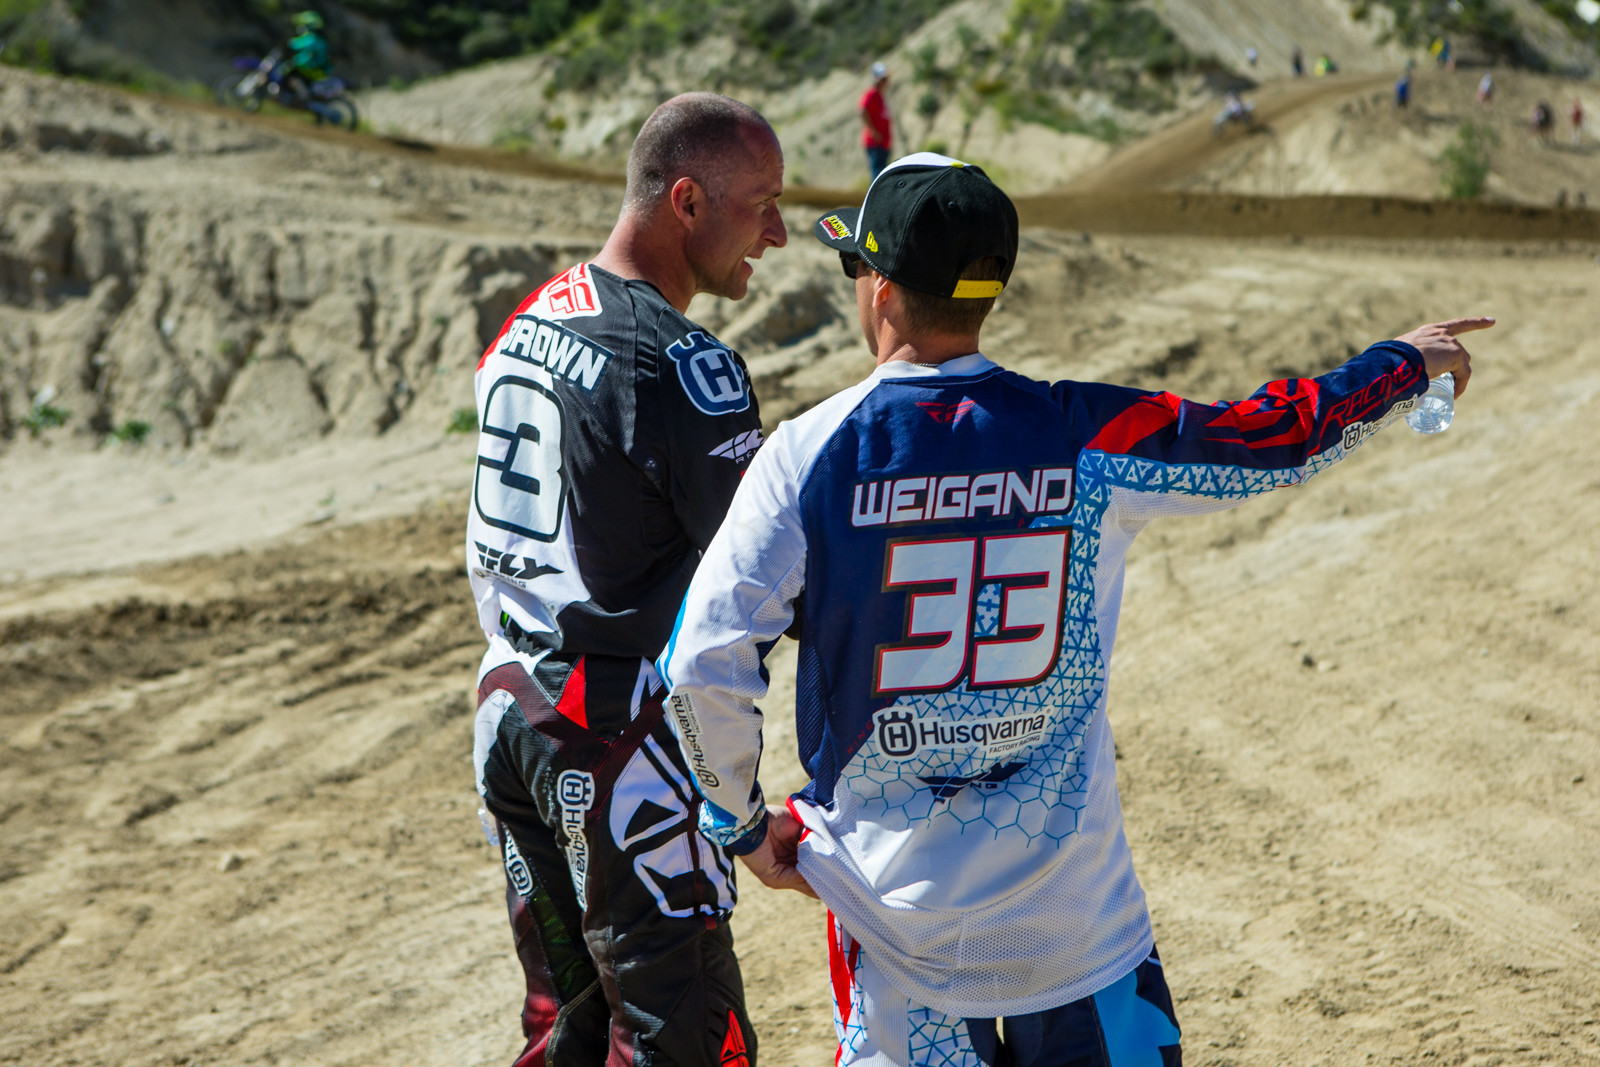 Mike Brown and Timmy Weigand - 2016 MTA World Two-Stroke Nationals - Motocross Pictures - Vital MX